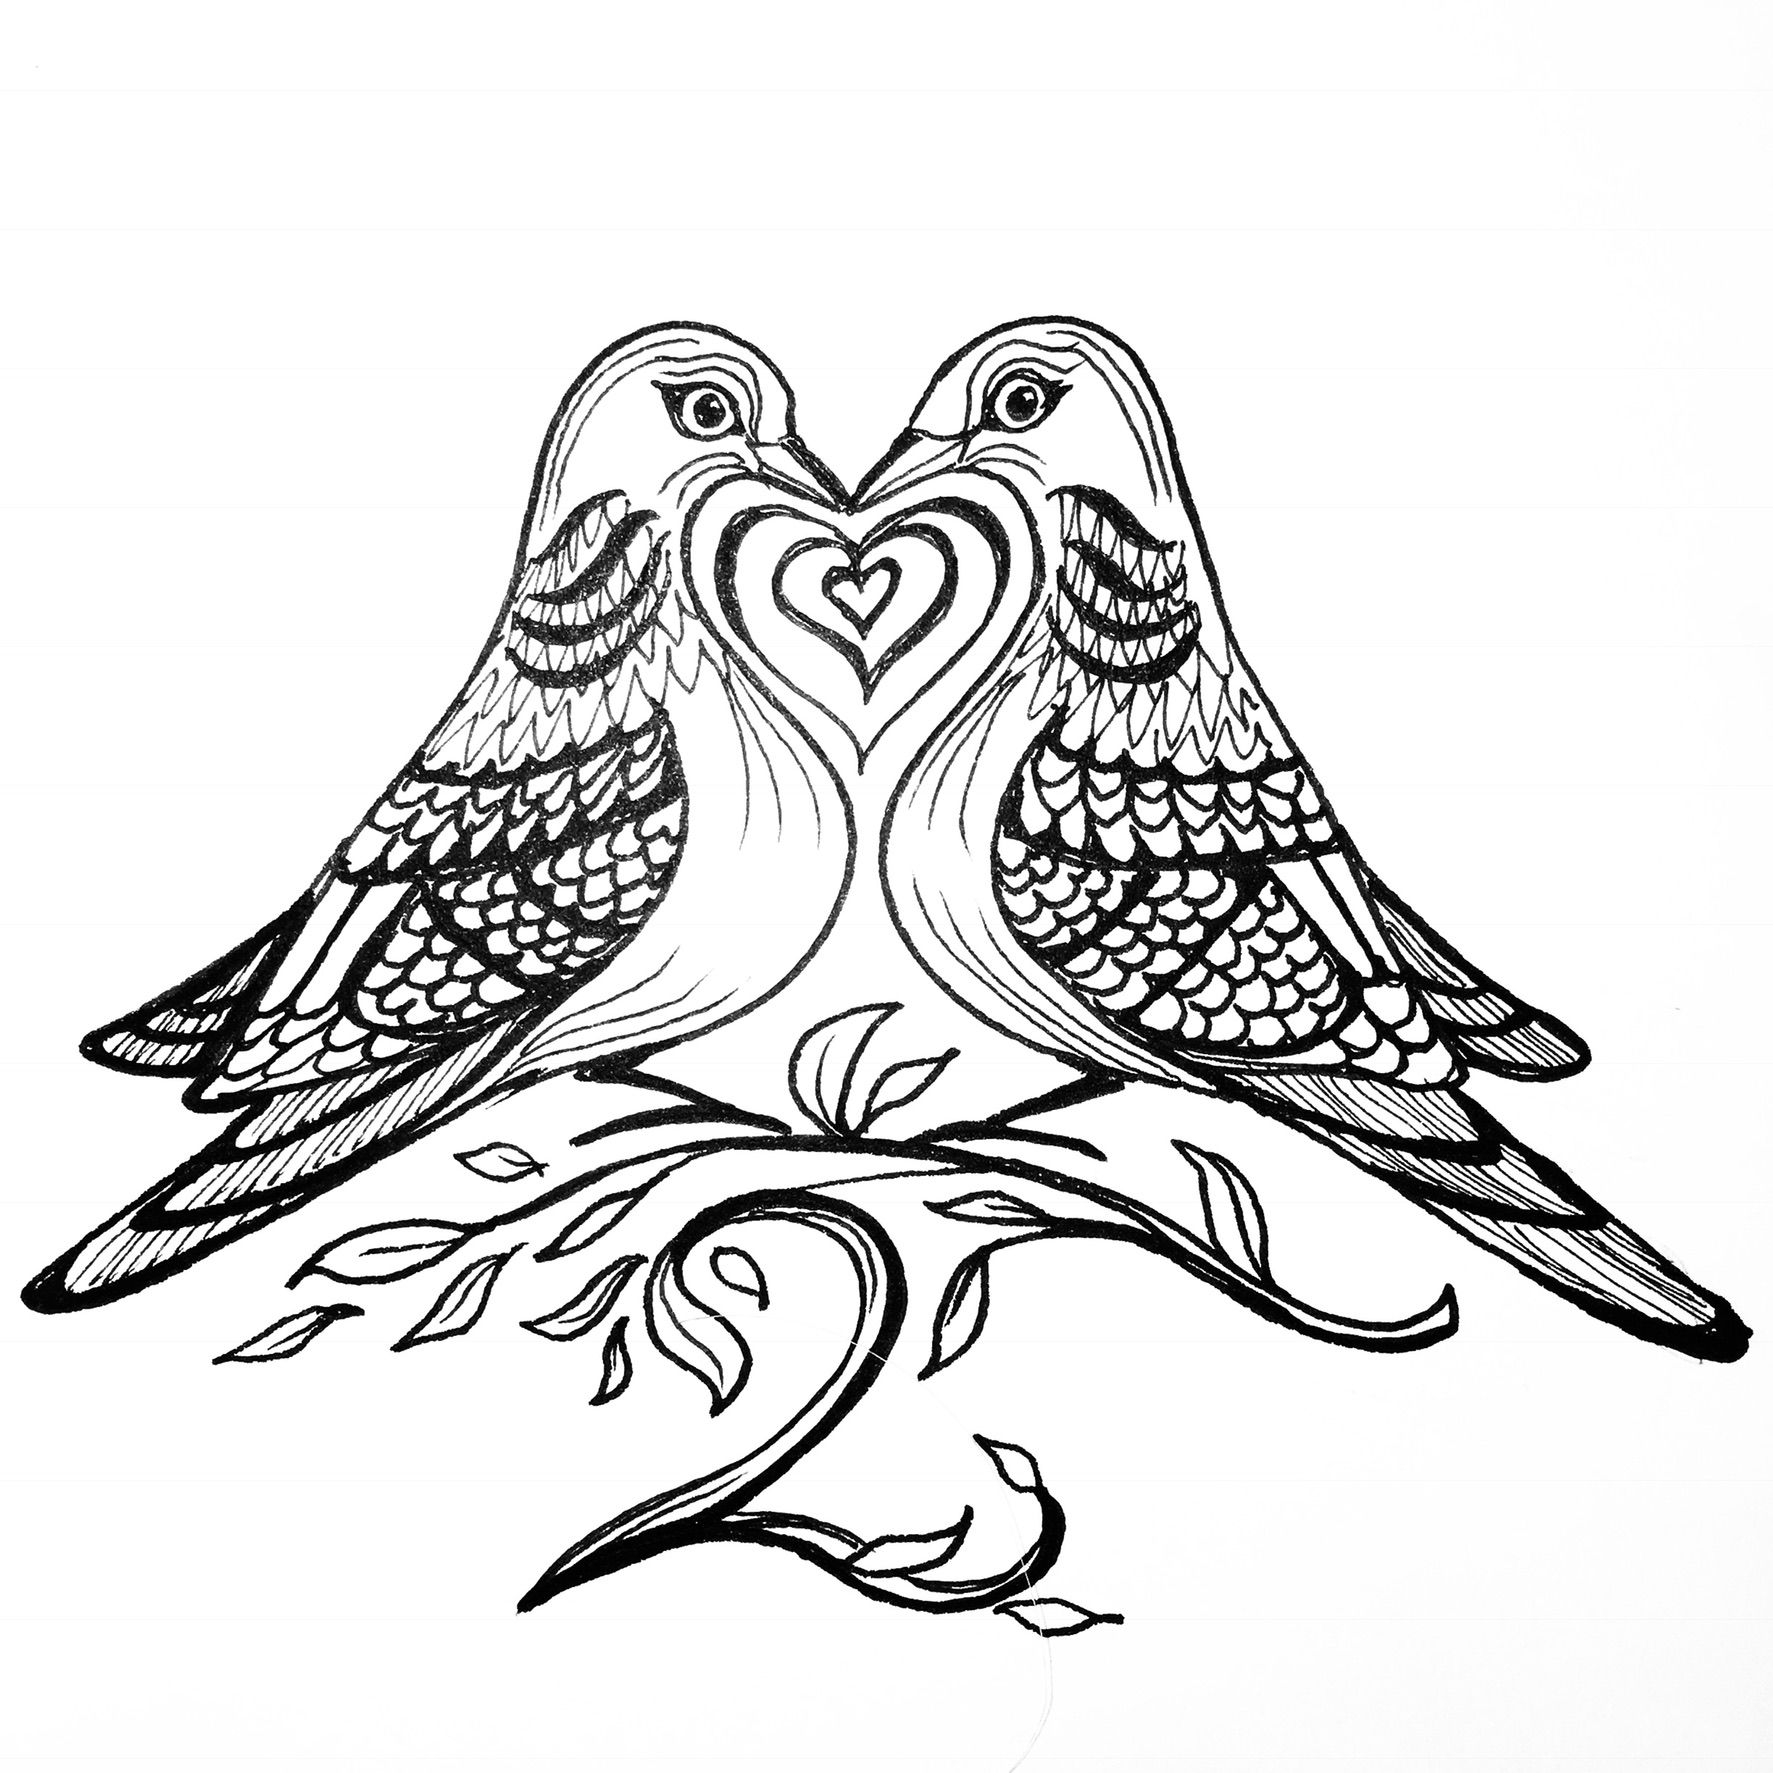 Two Turtle Doves Penandink Drawing Doodle Blackandwhite